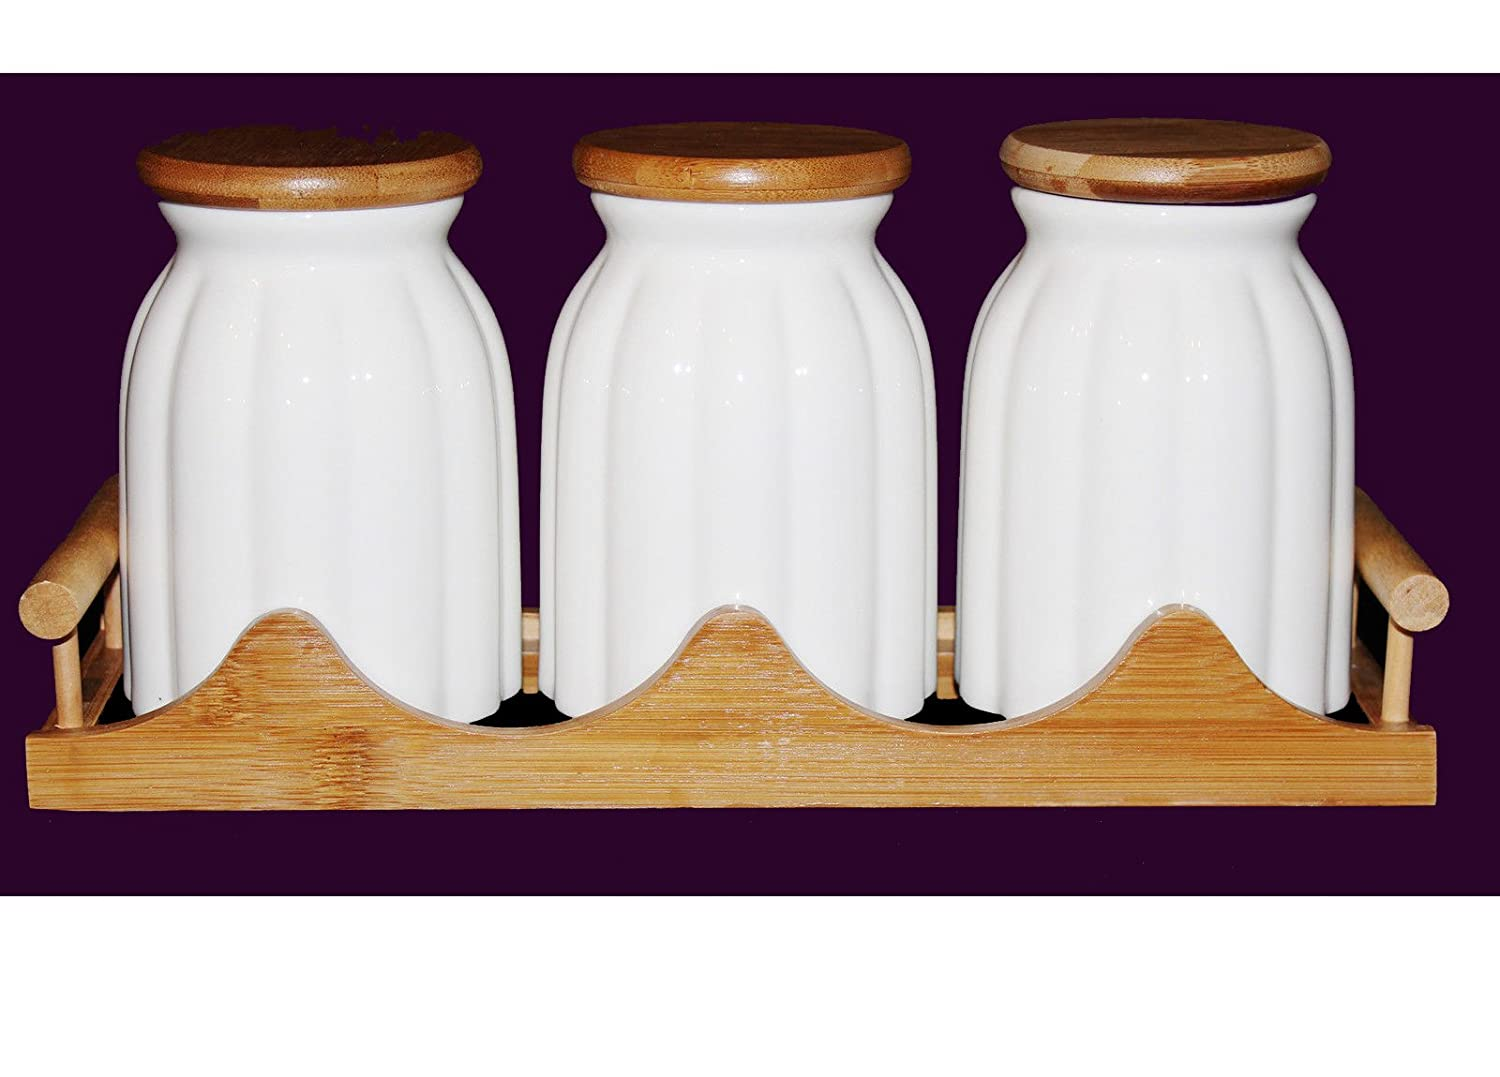 tea coffee sugar kitchen jars ceramic storage canisters bamboo